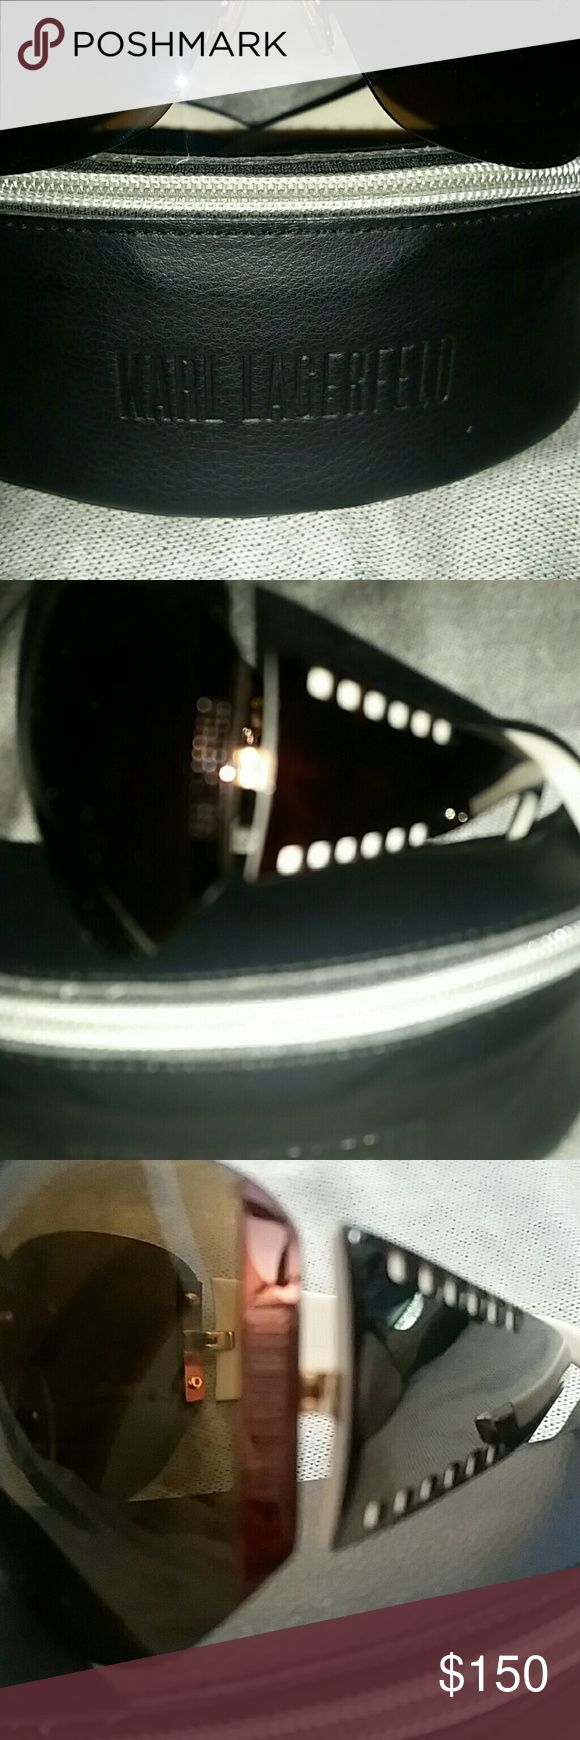 KARL LAGERFELD KL sunglasses. Gifted and unfortunately not my style. Karl Lagerfeld Accessories Sunglasses